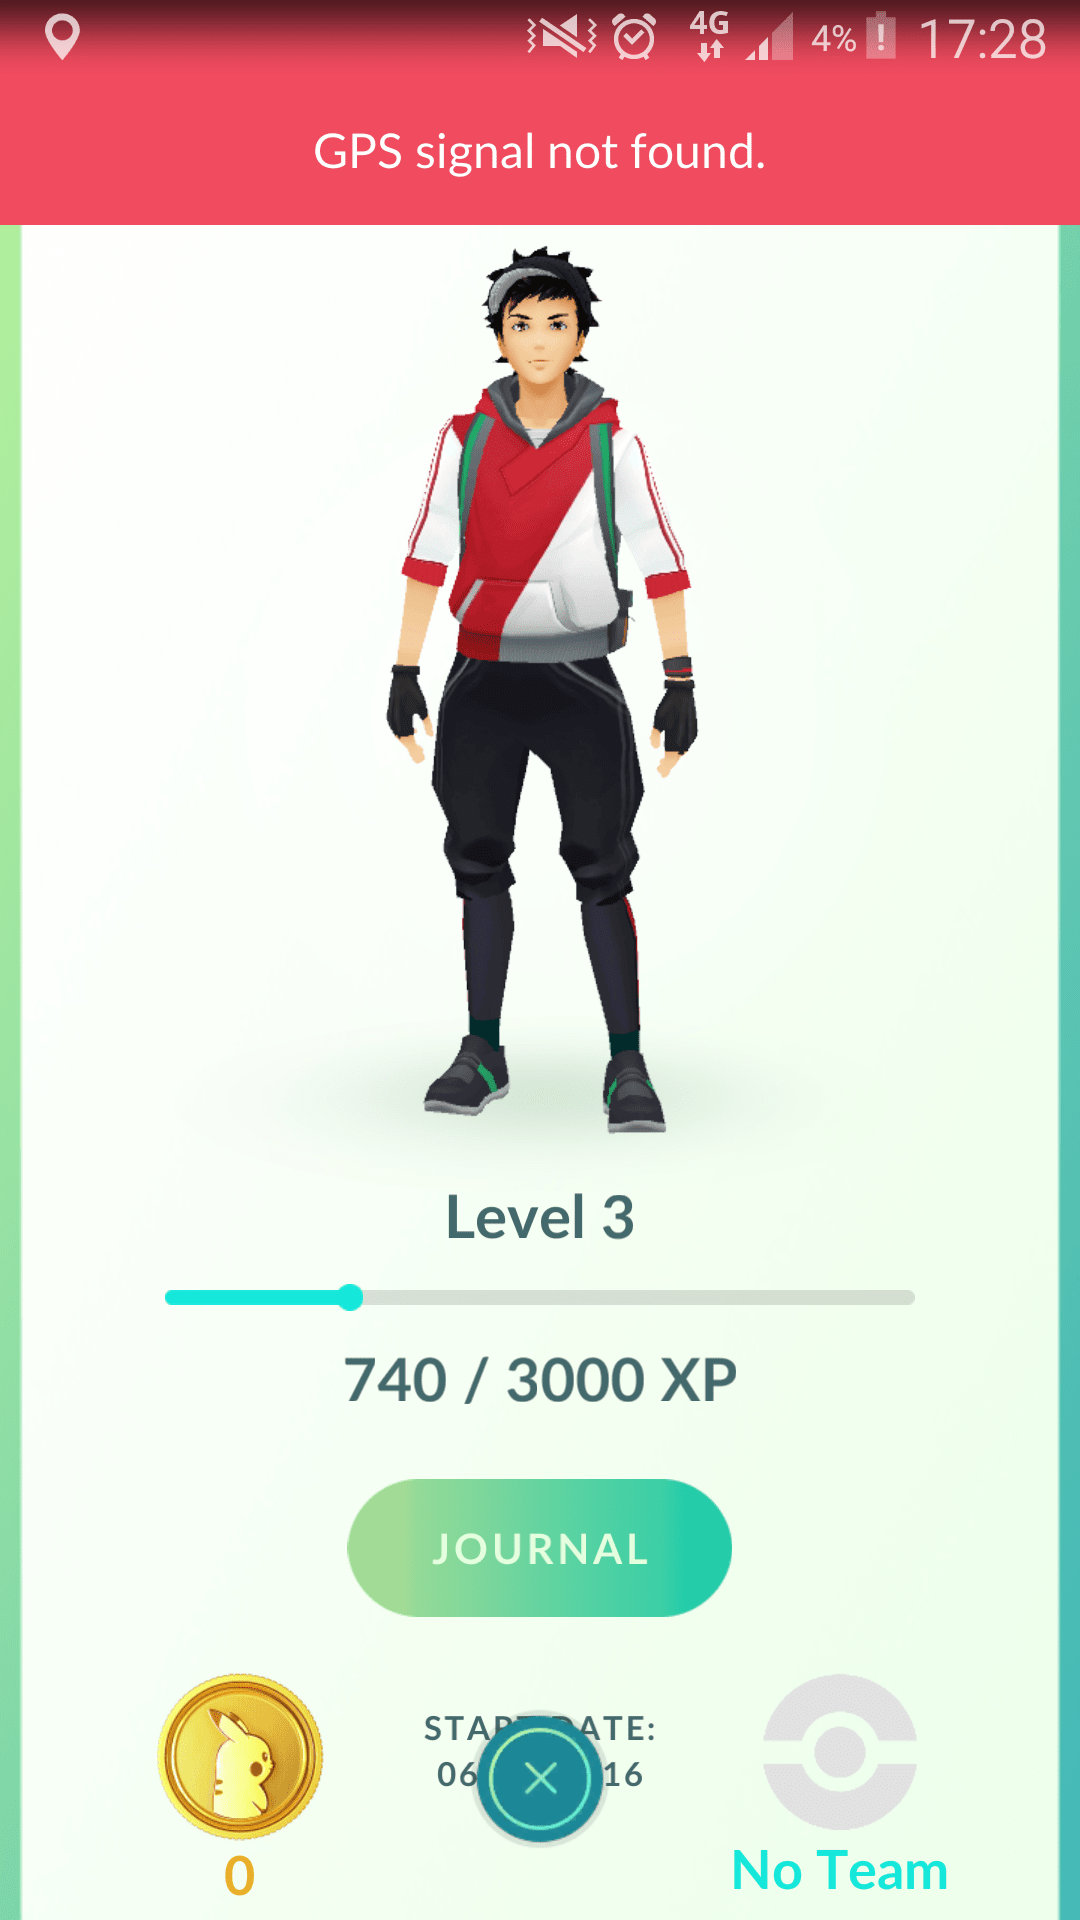 Pokemon Go User Profile Image